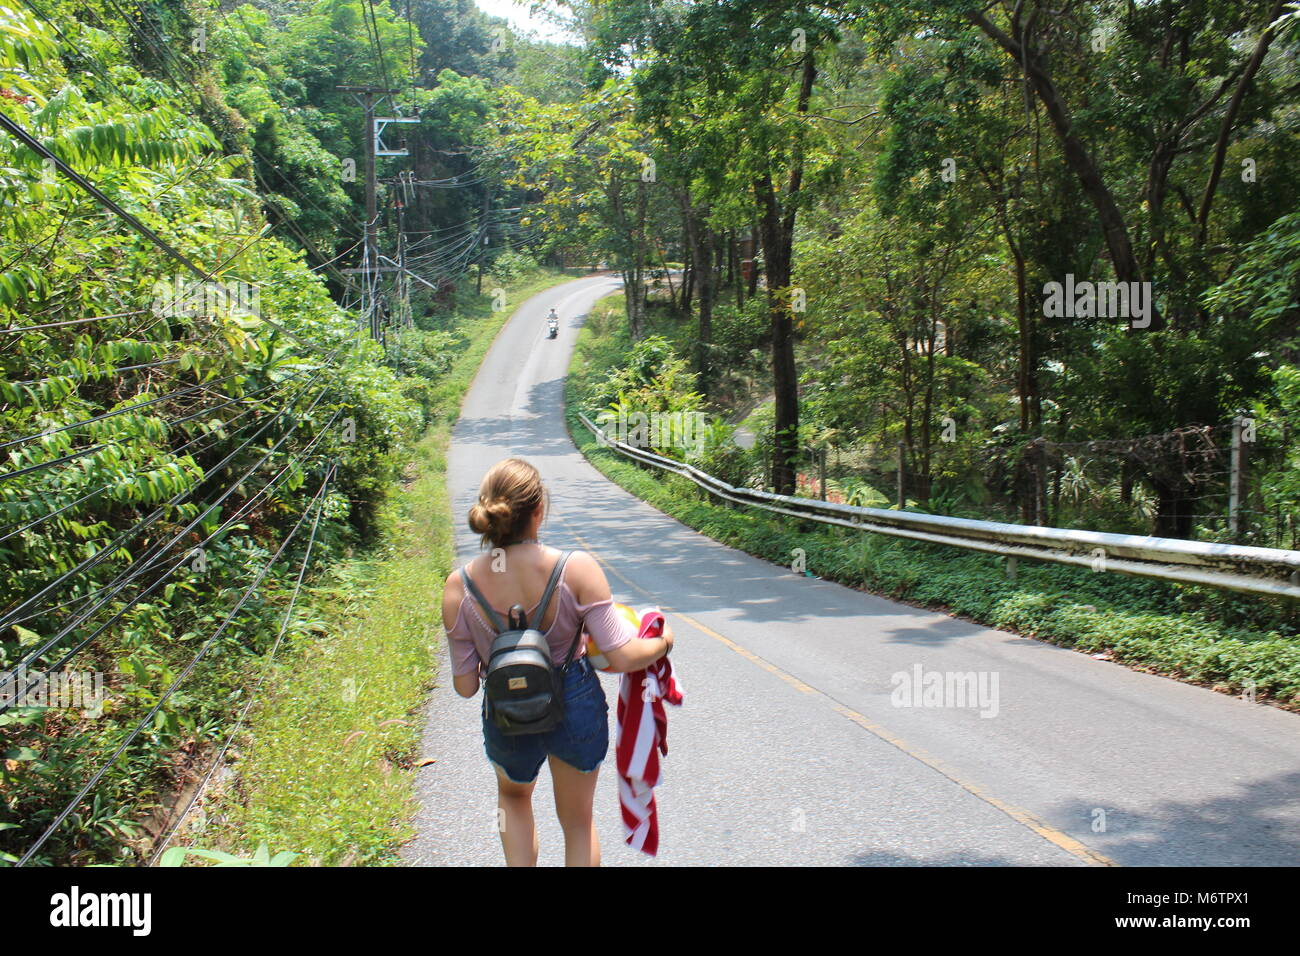 Hiking through the Jungles of Koh Chang - Stock Image